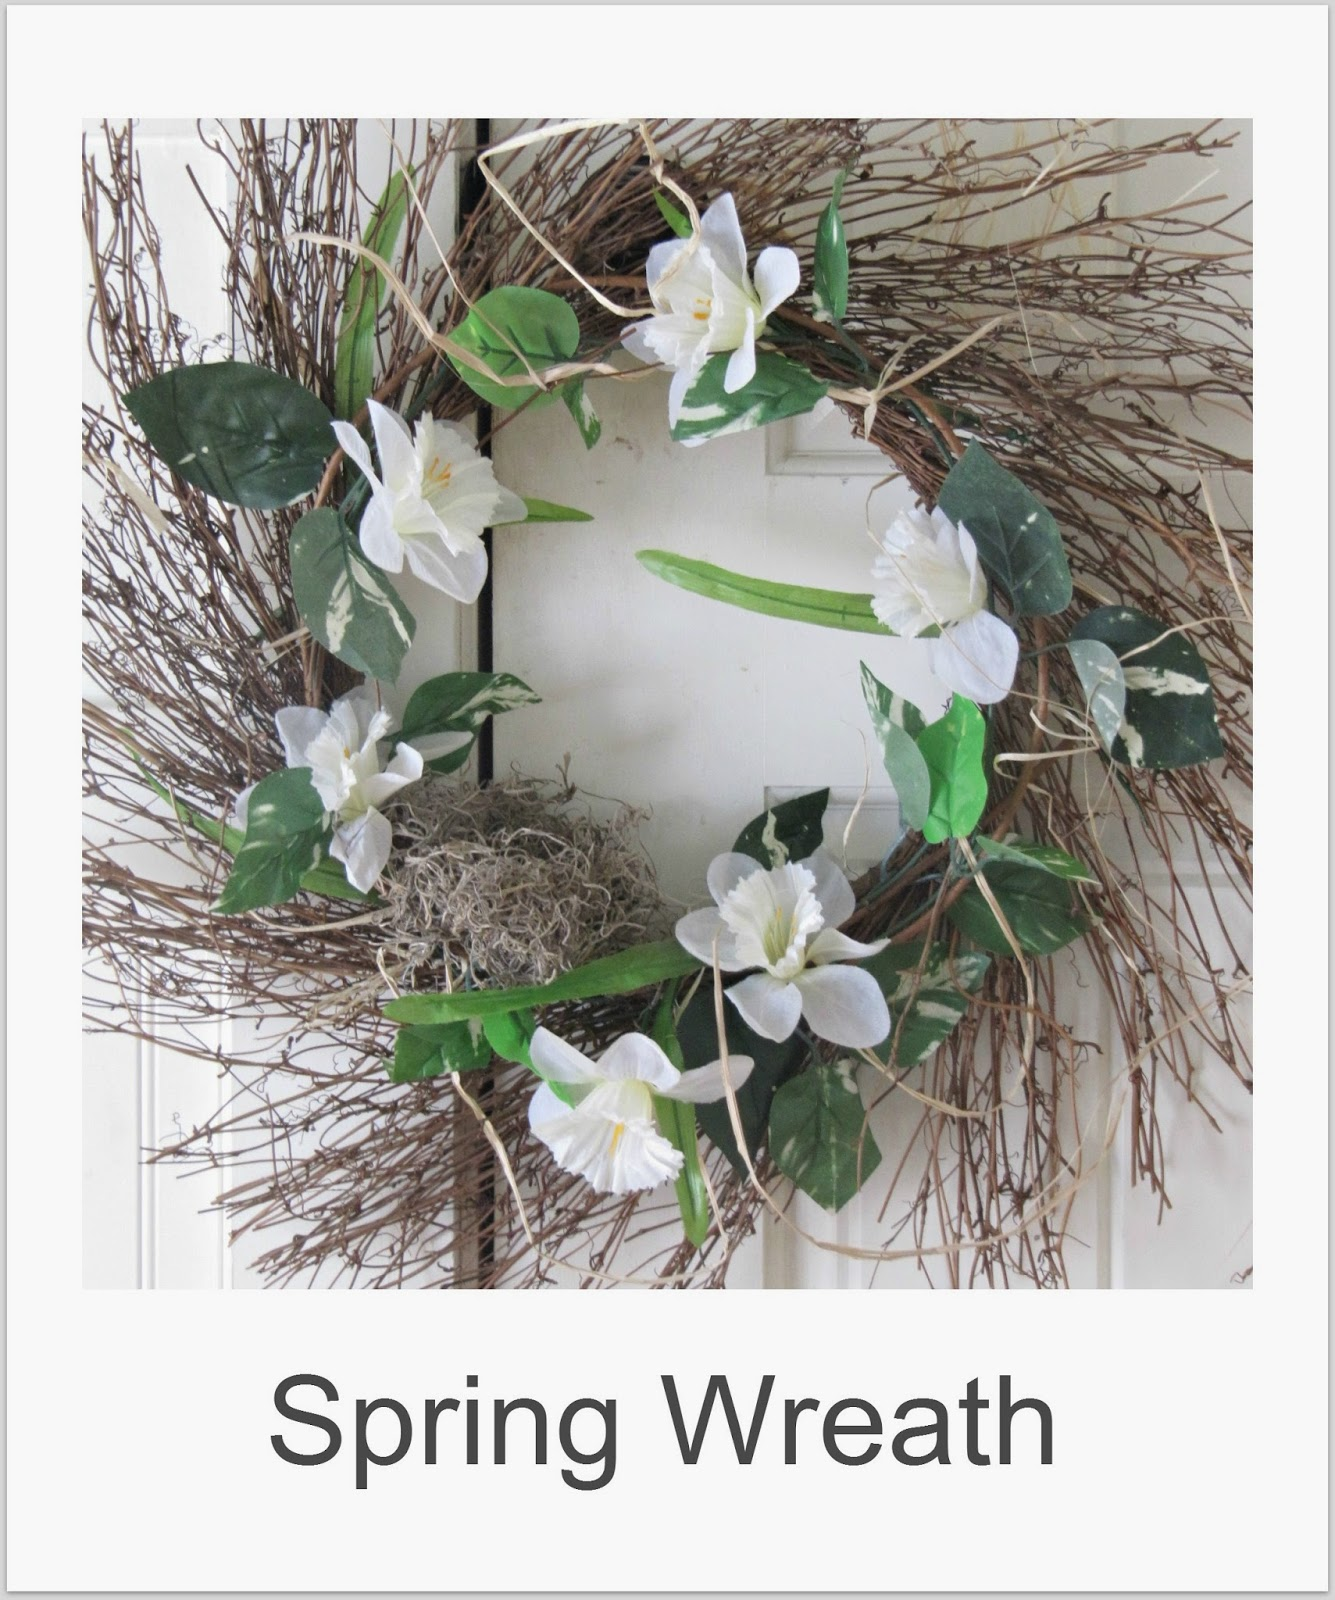 http://thewickerhouse.blogspot.com/2014/03/spring-wreath.html